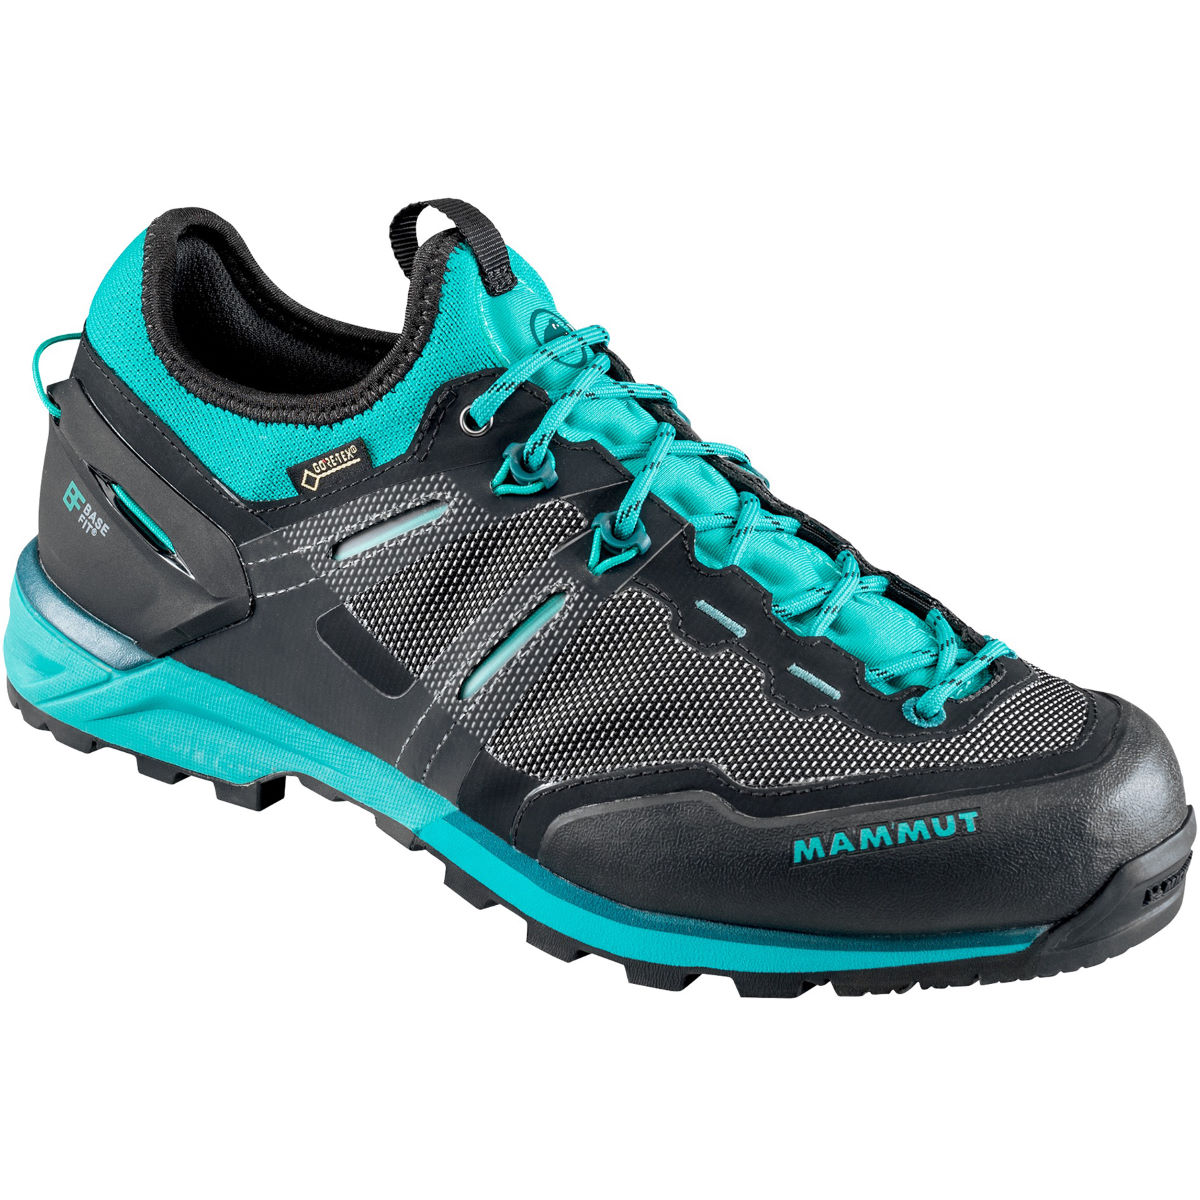 mammut Mammut Alnasca Knit Low GTX Women Shoes   Shoes